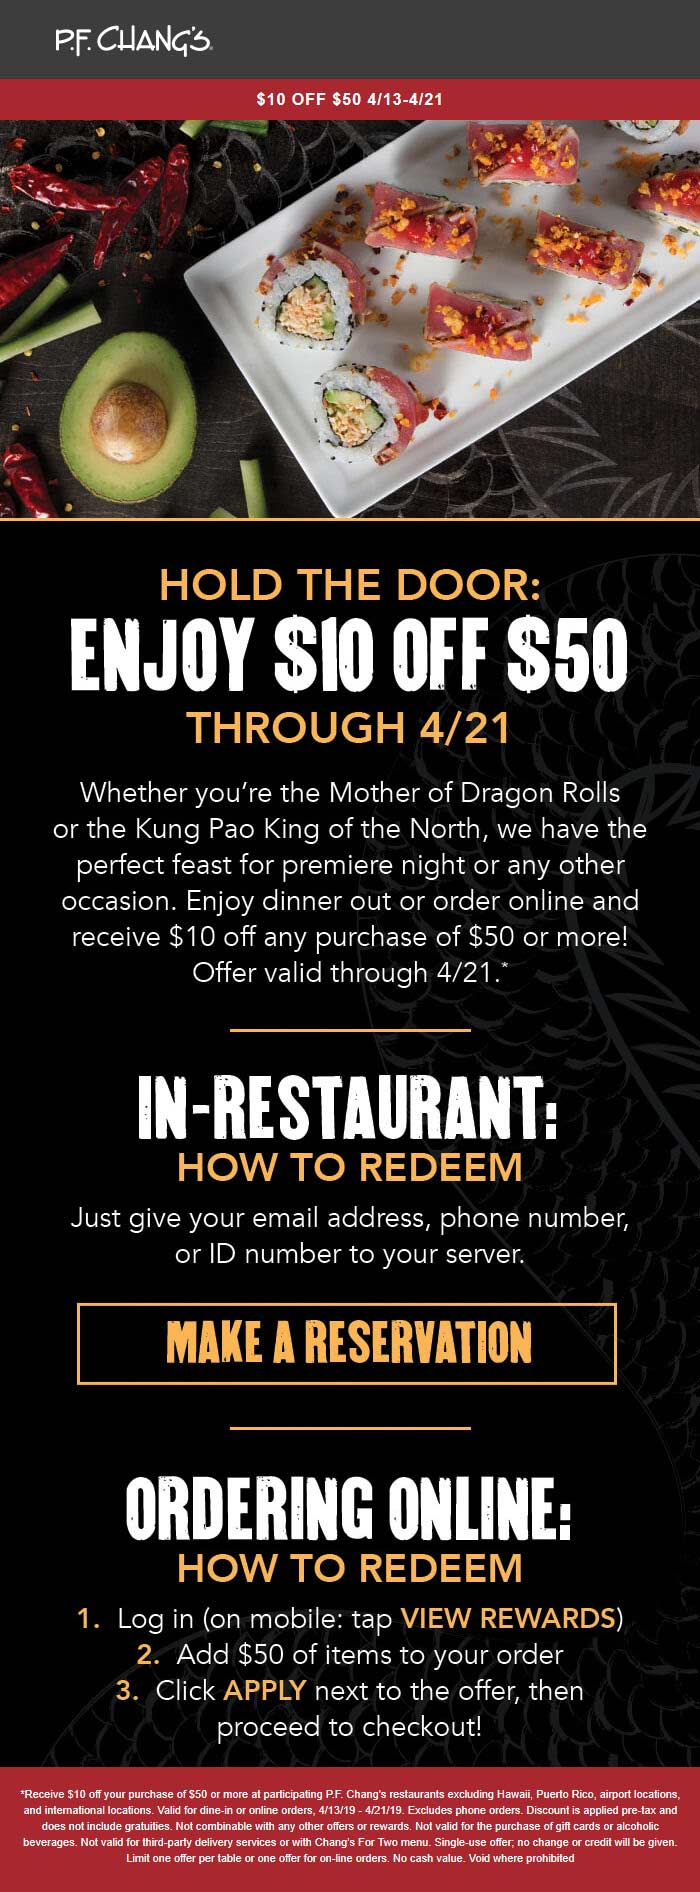 P.F. Changs Coupon November 2019 $10 off $50 for rewards members at P.F. Changs